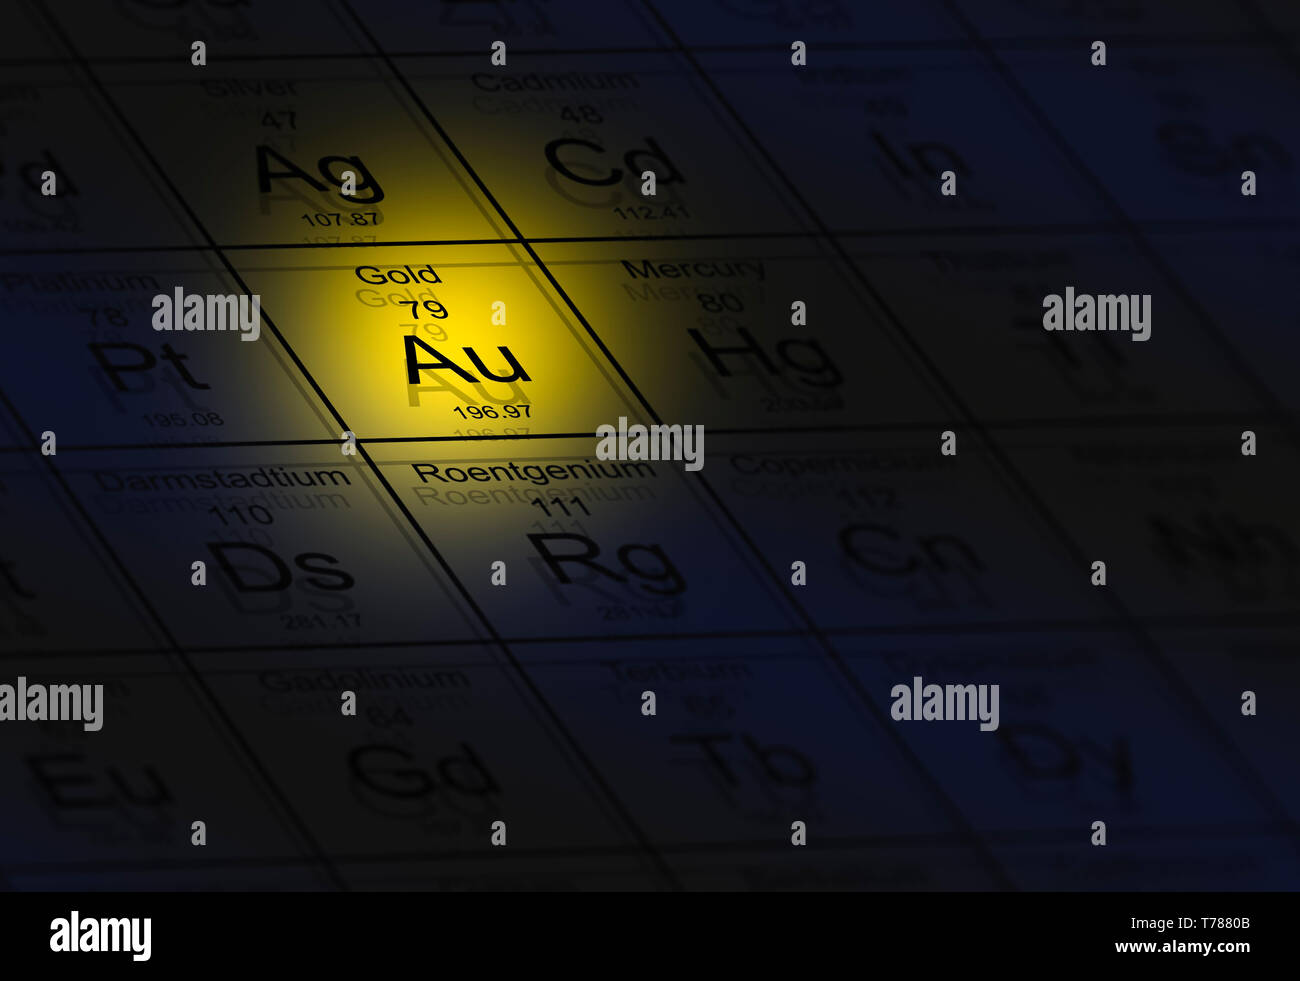 The chemical element of Gold (AU) highlighted on The Periodic Table of Elements. - Stock Image